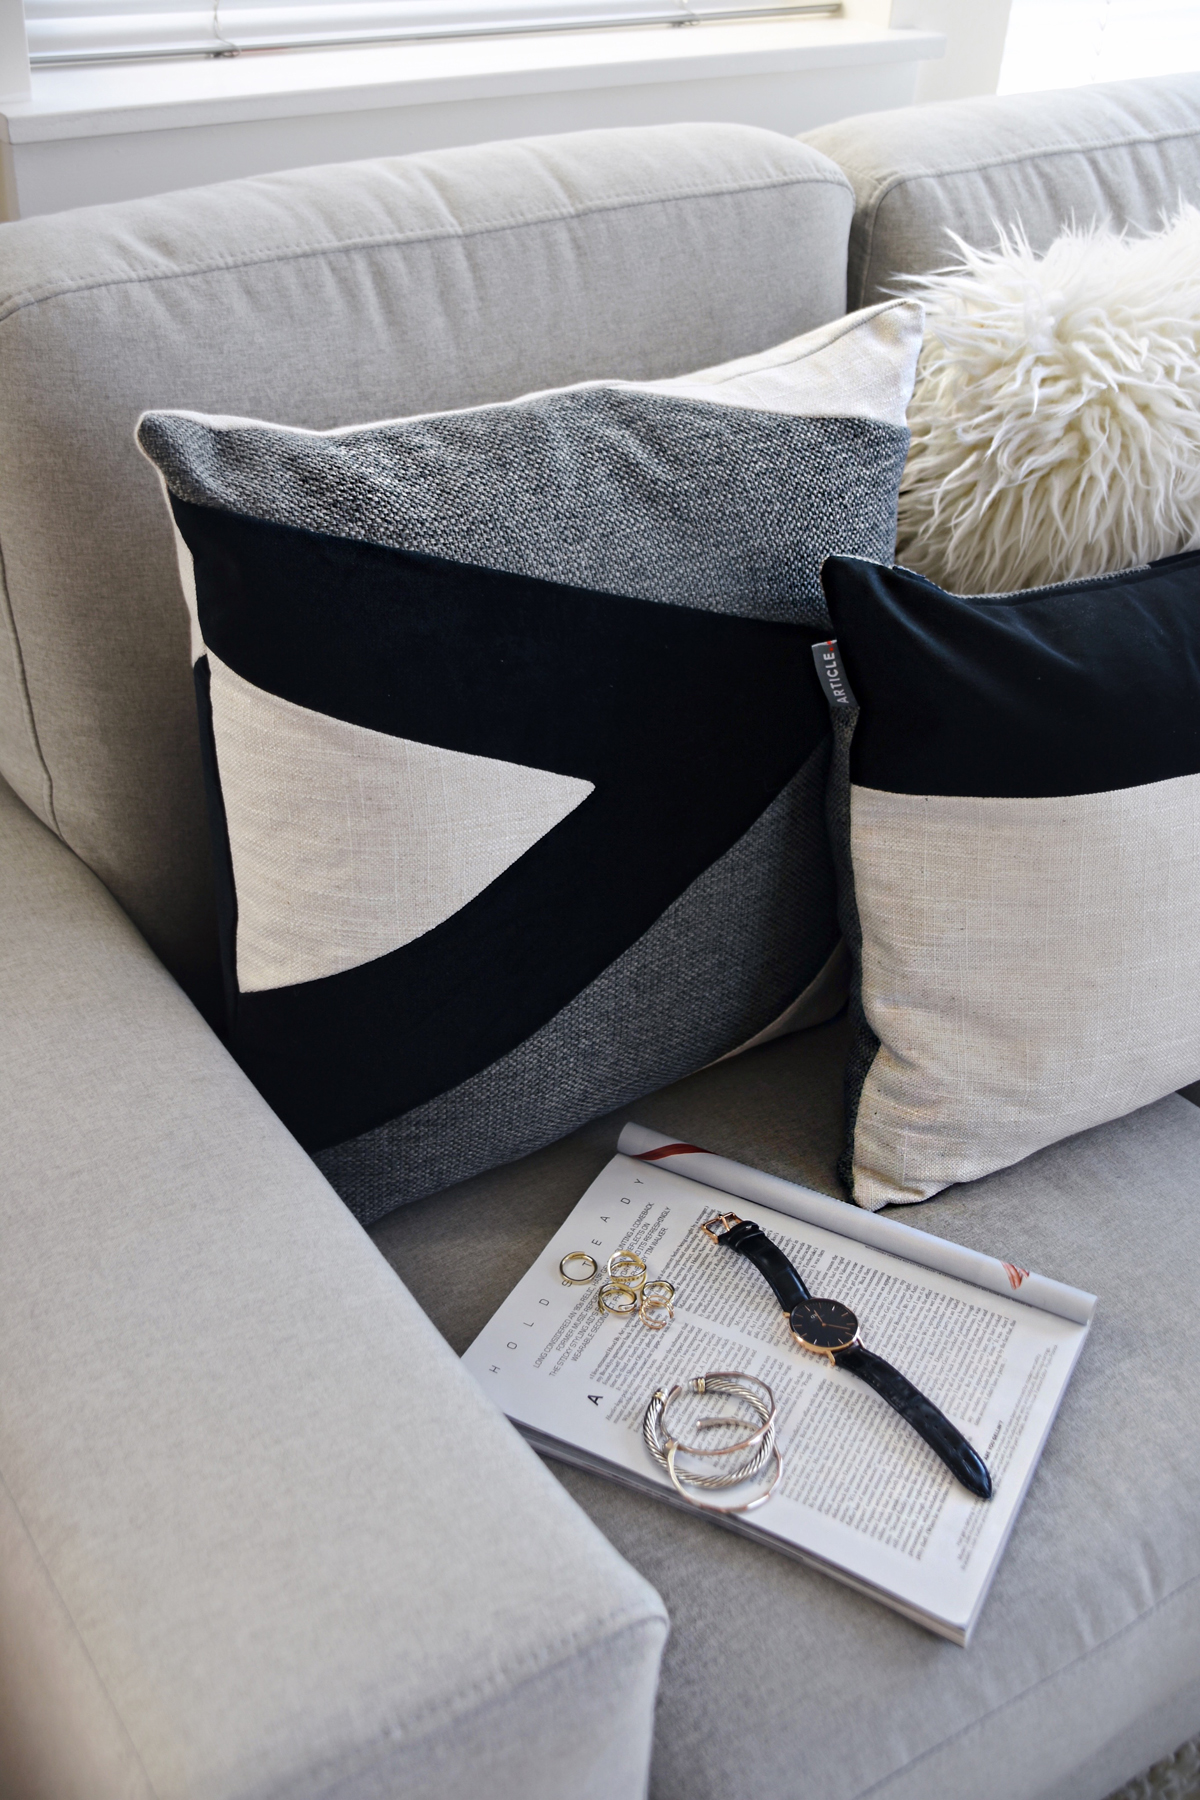 Article Velu pillow collection